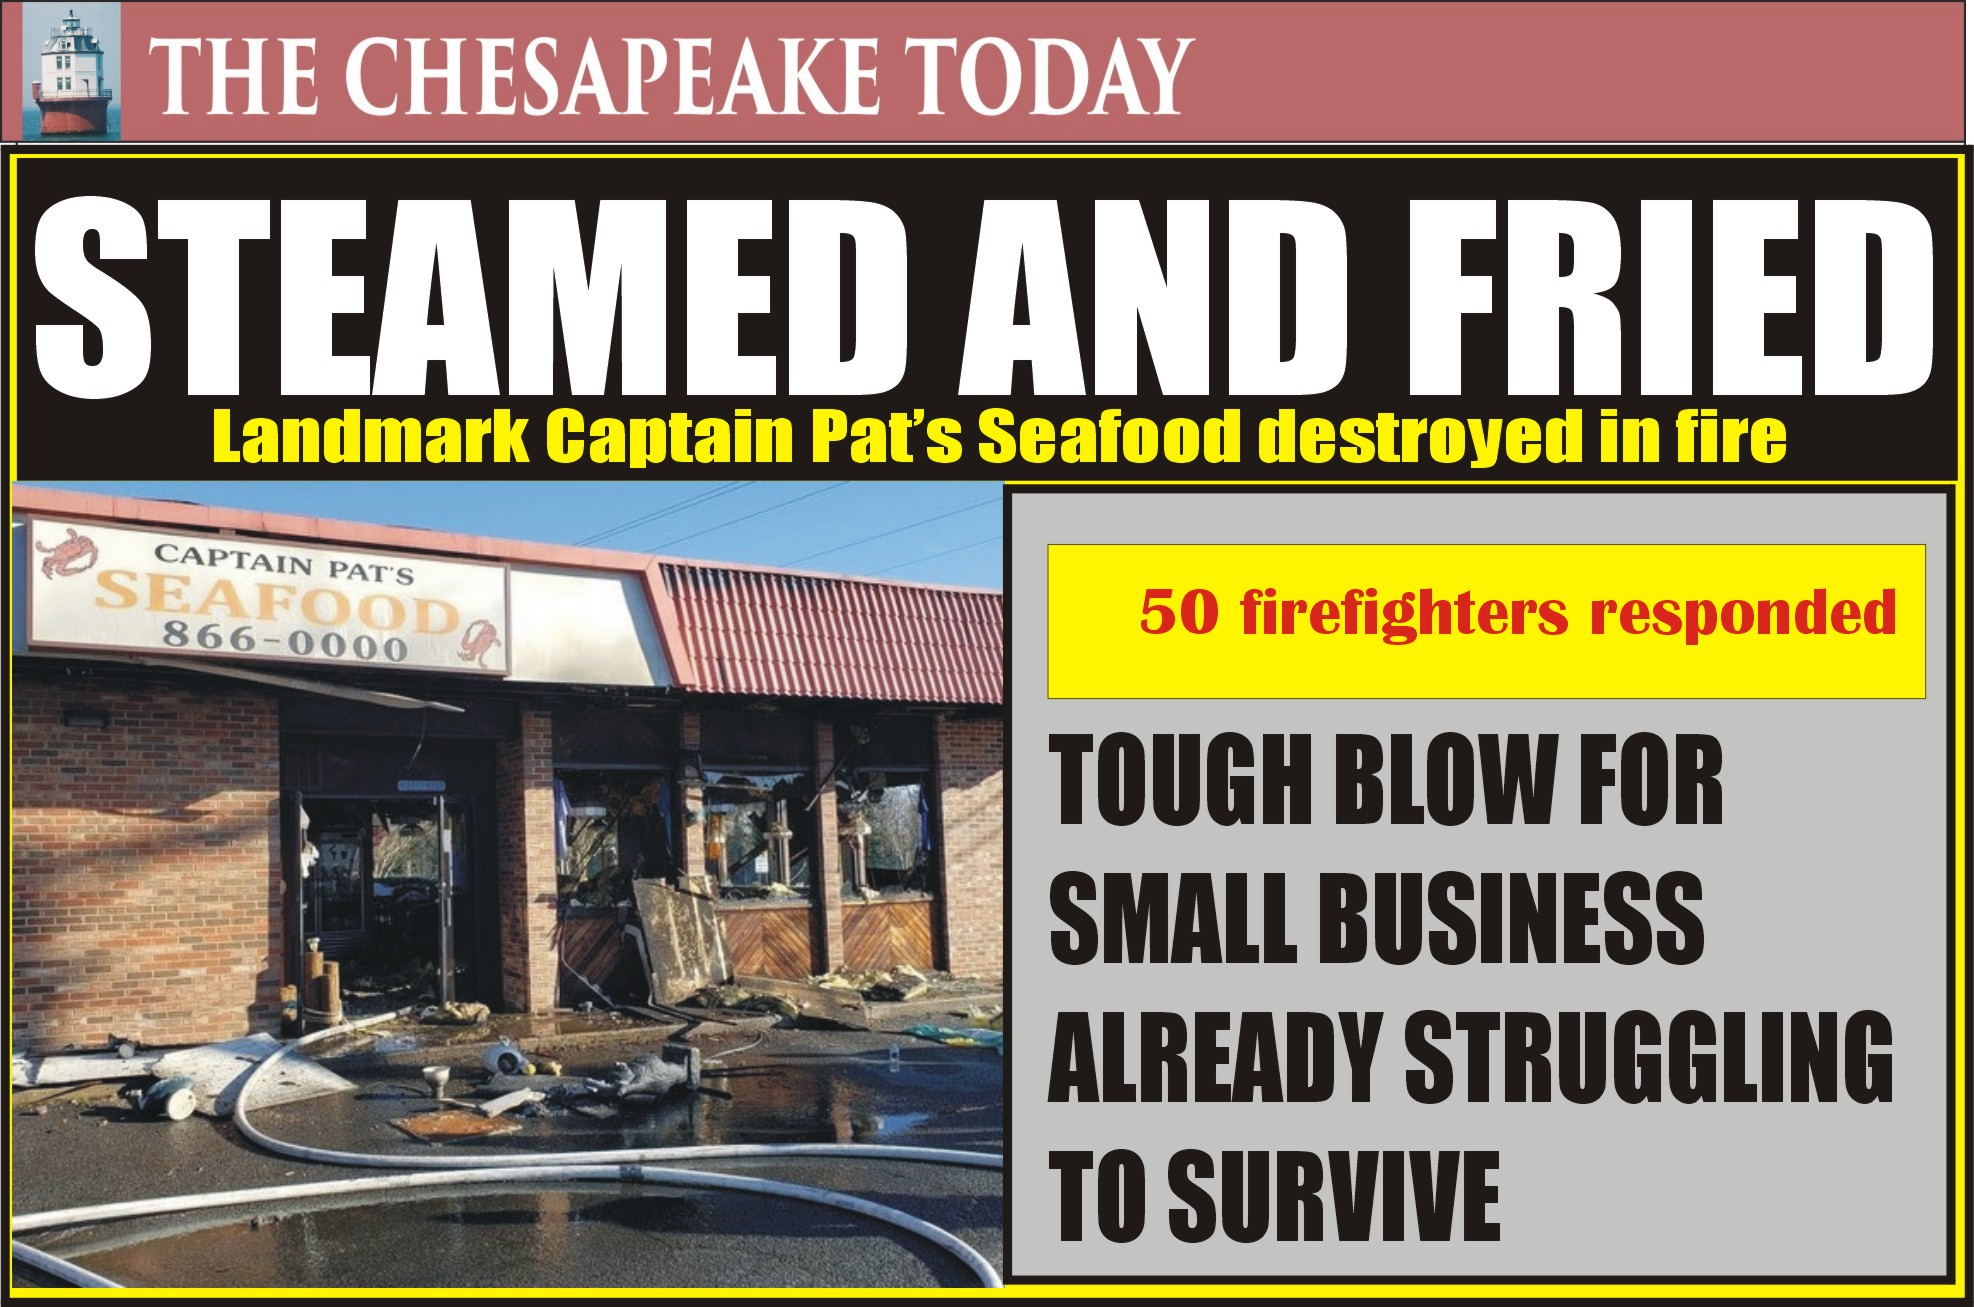 HOT STEAMED CRABS: Popular Seafood Carryout Total Loss Just as Crabbing Season Begins